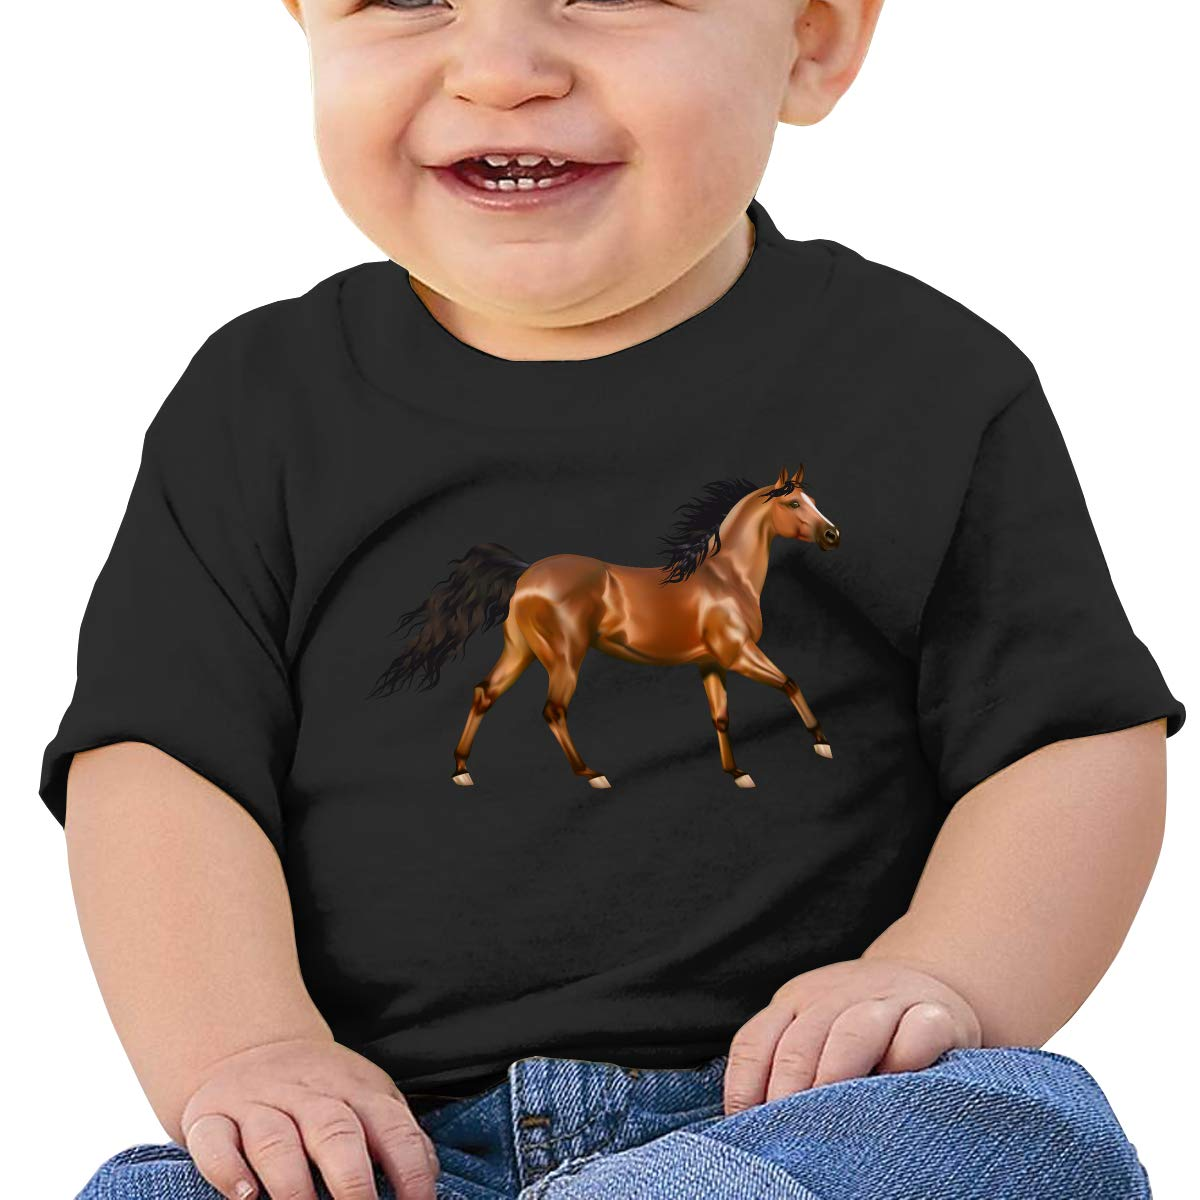 Arsmt 3D Horse Toddler Short Sleeve Shirt Girl Birthday Gift